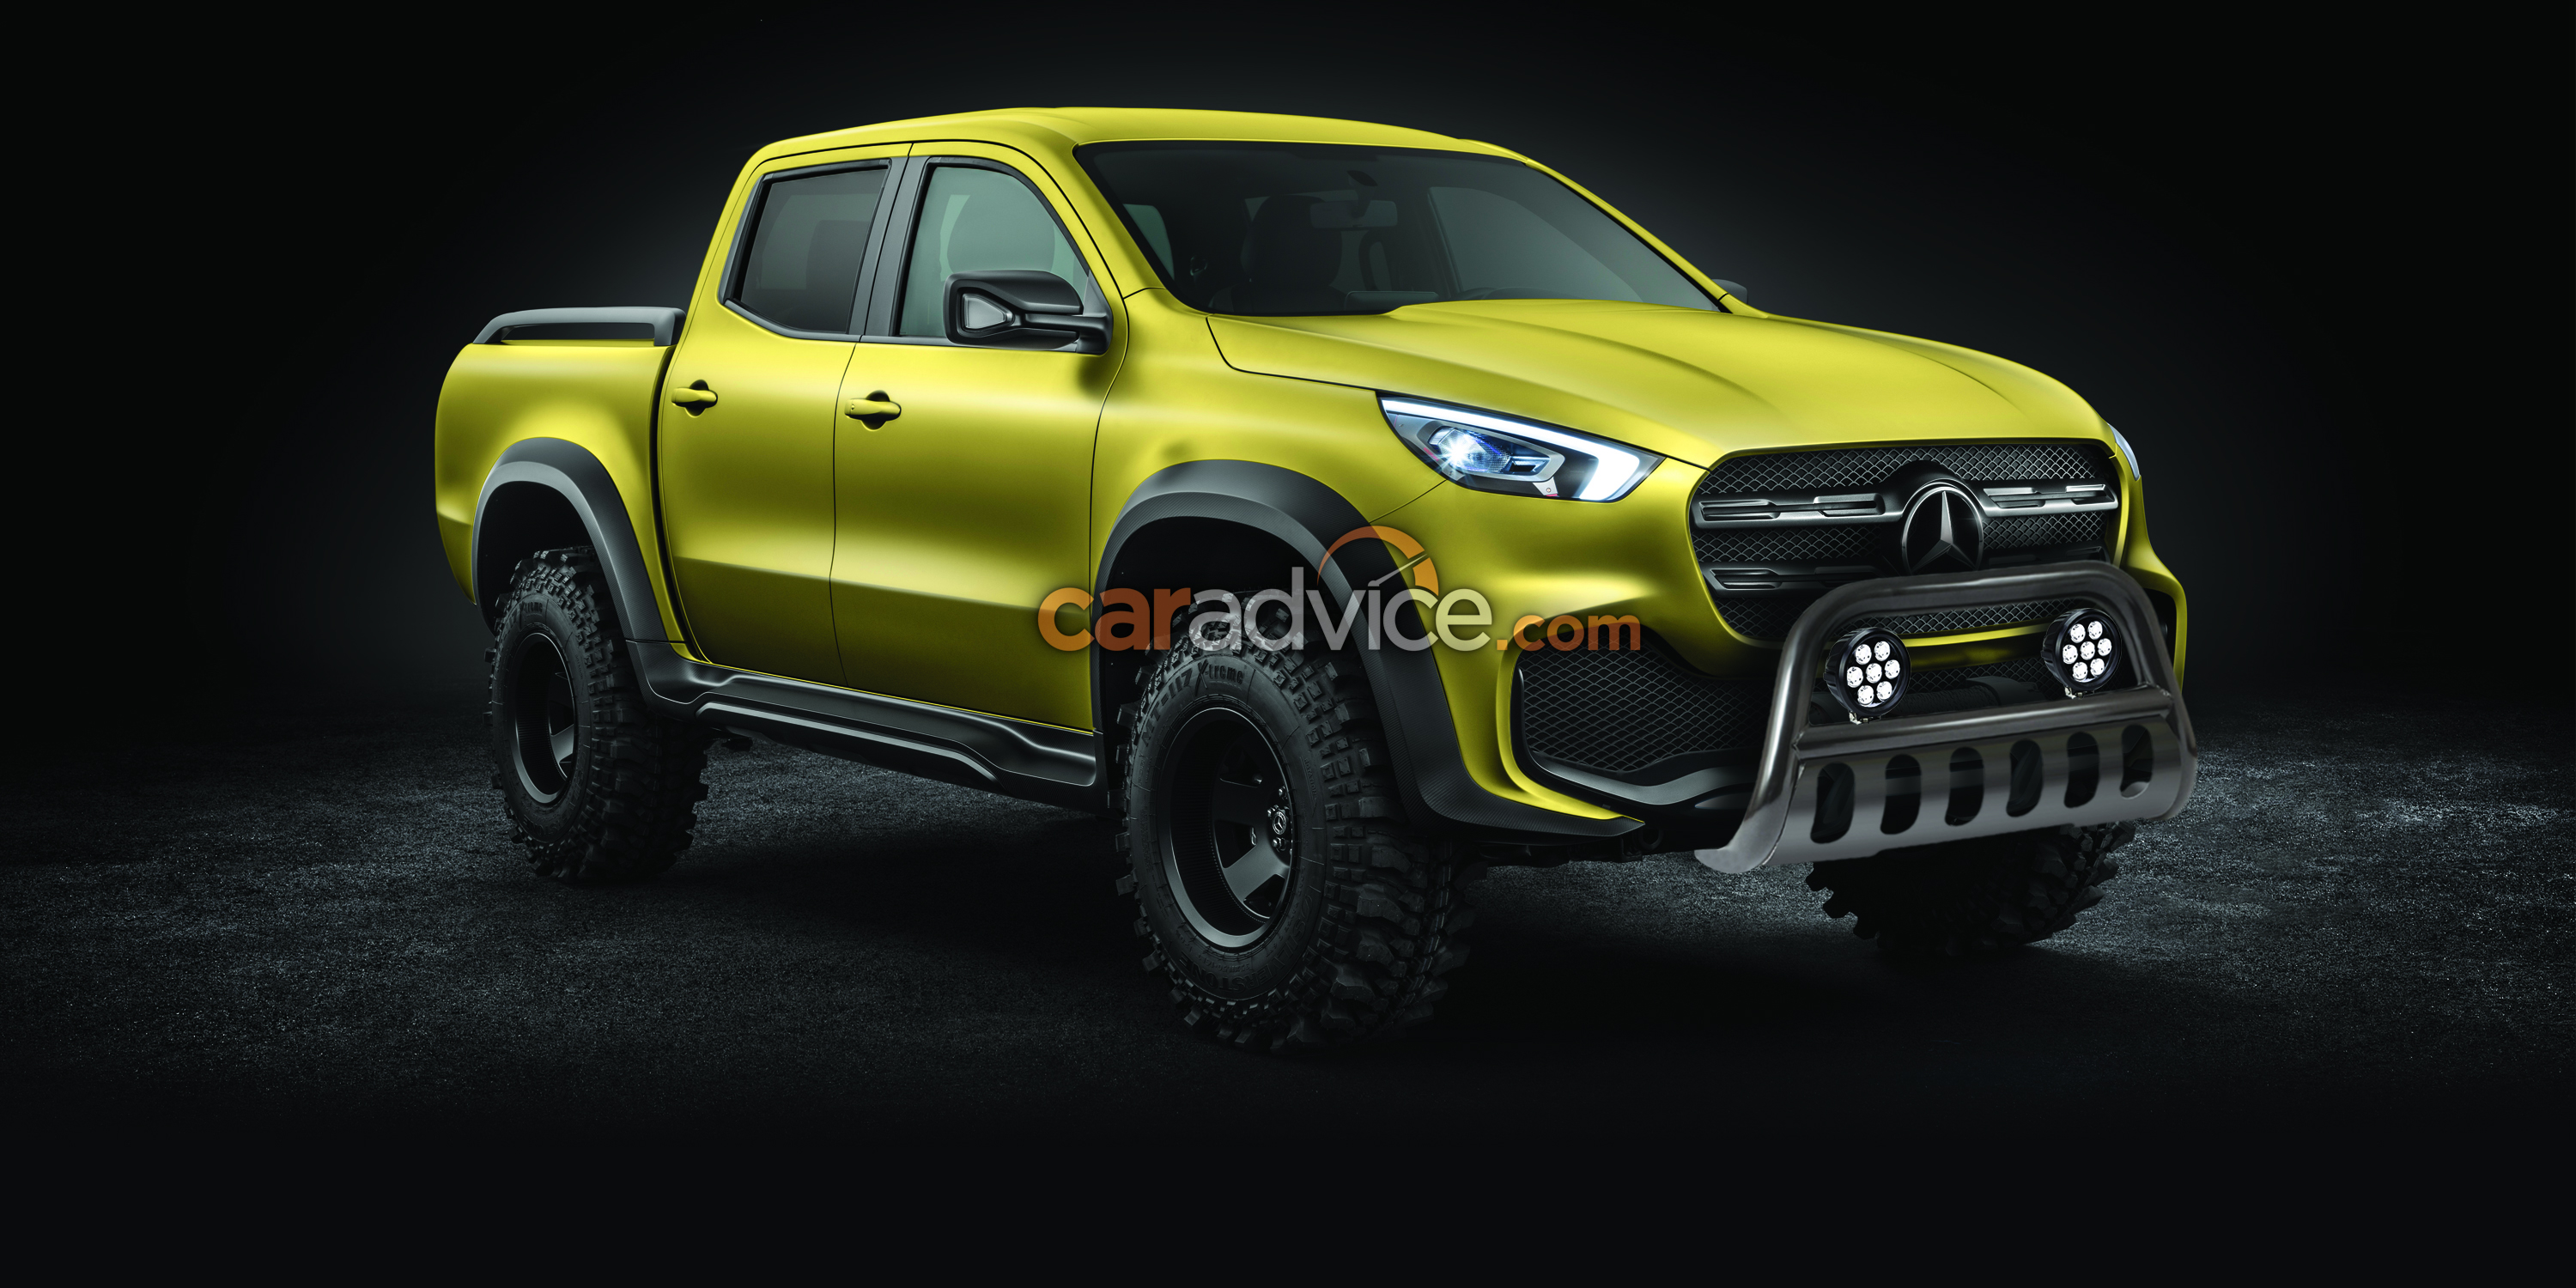 Mercedes benz x class ute to get full range of accessories for Mercedes benz accessory